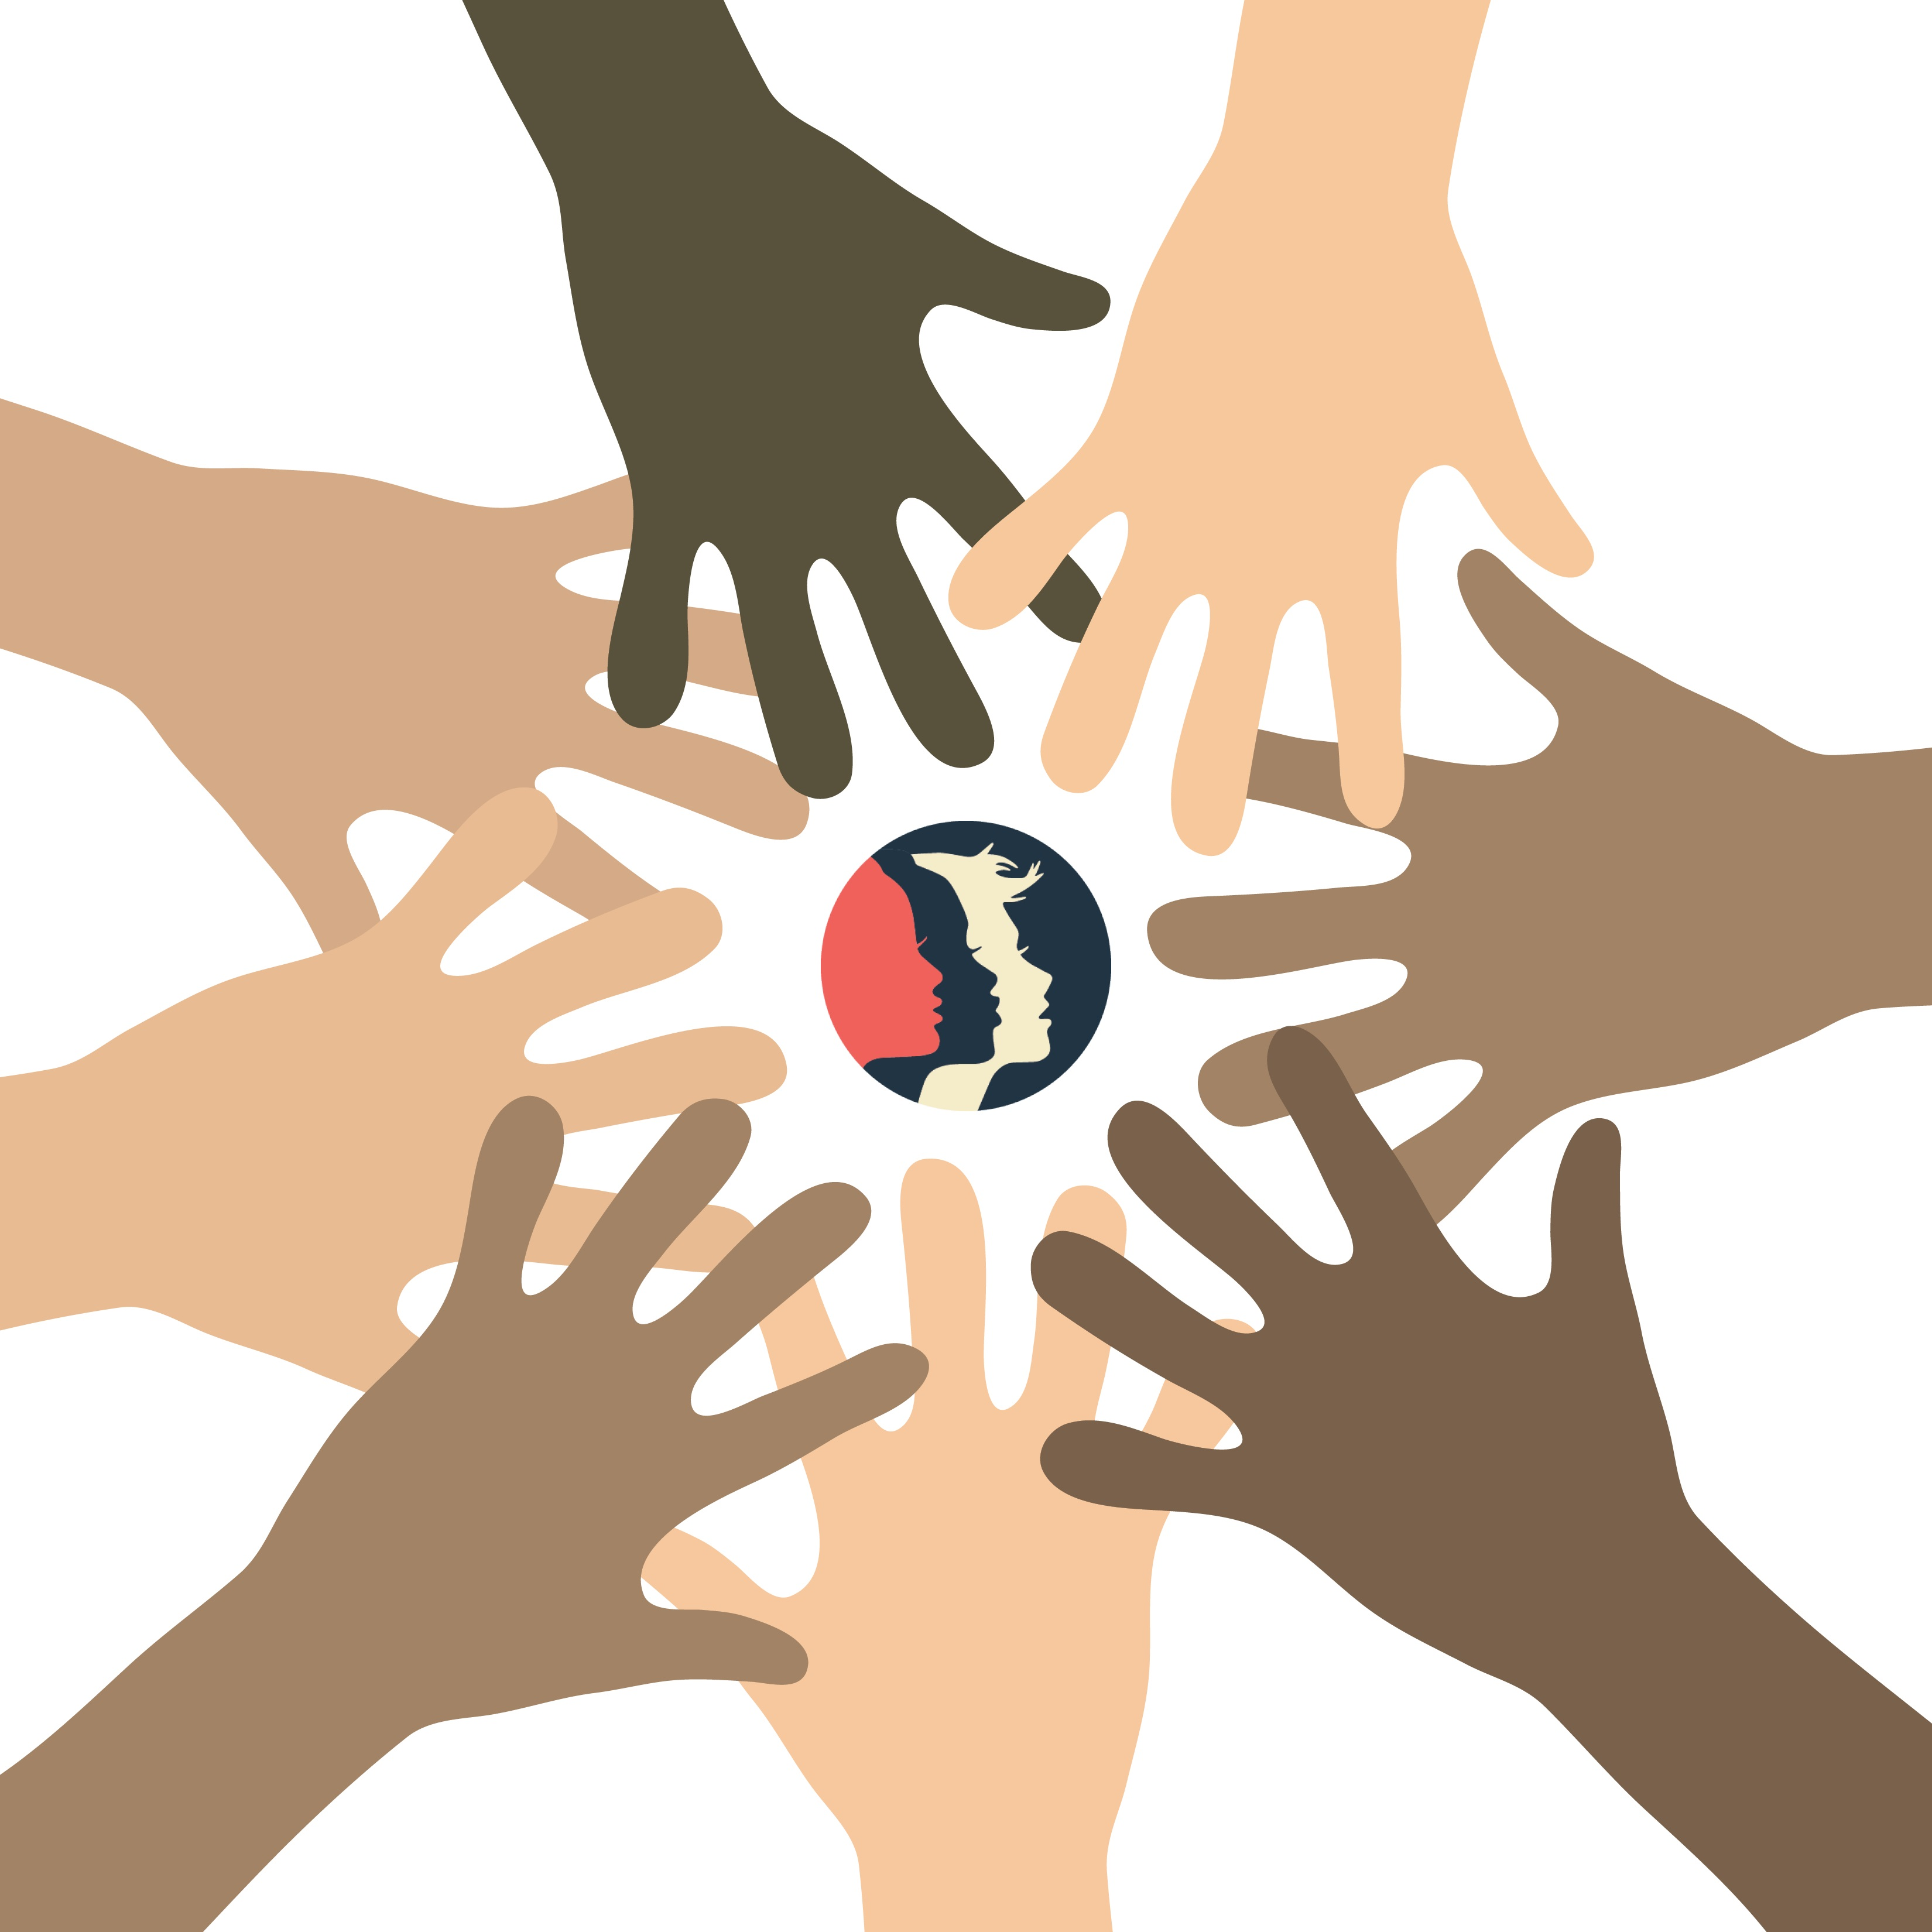 womens-hands-together-for-international-womens-day